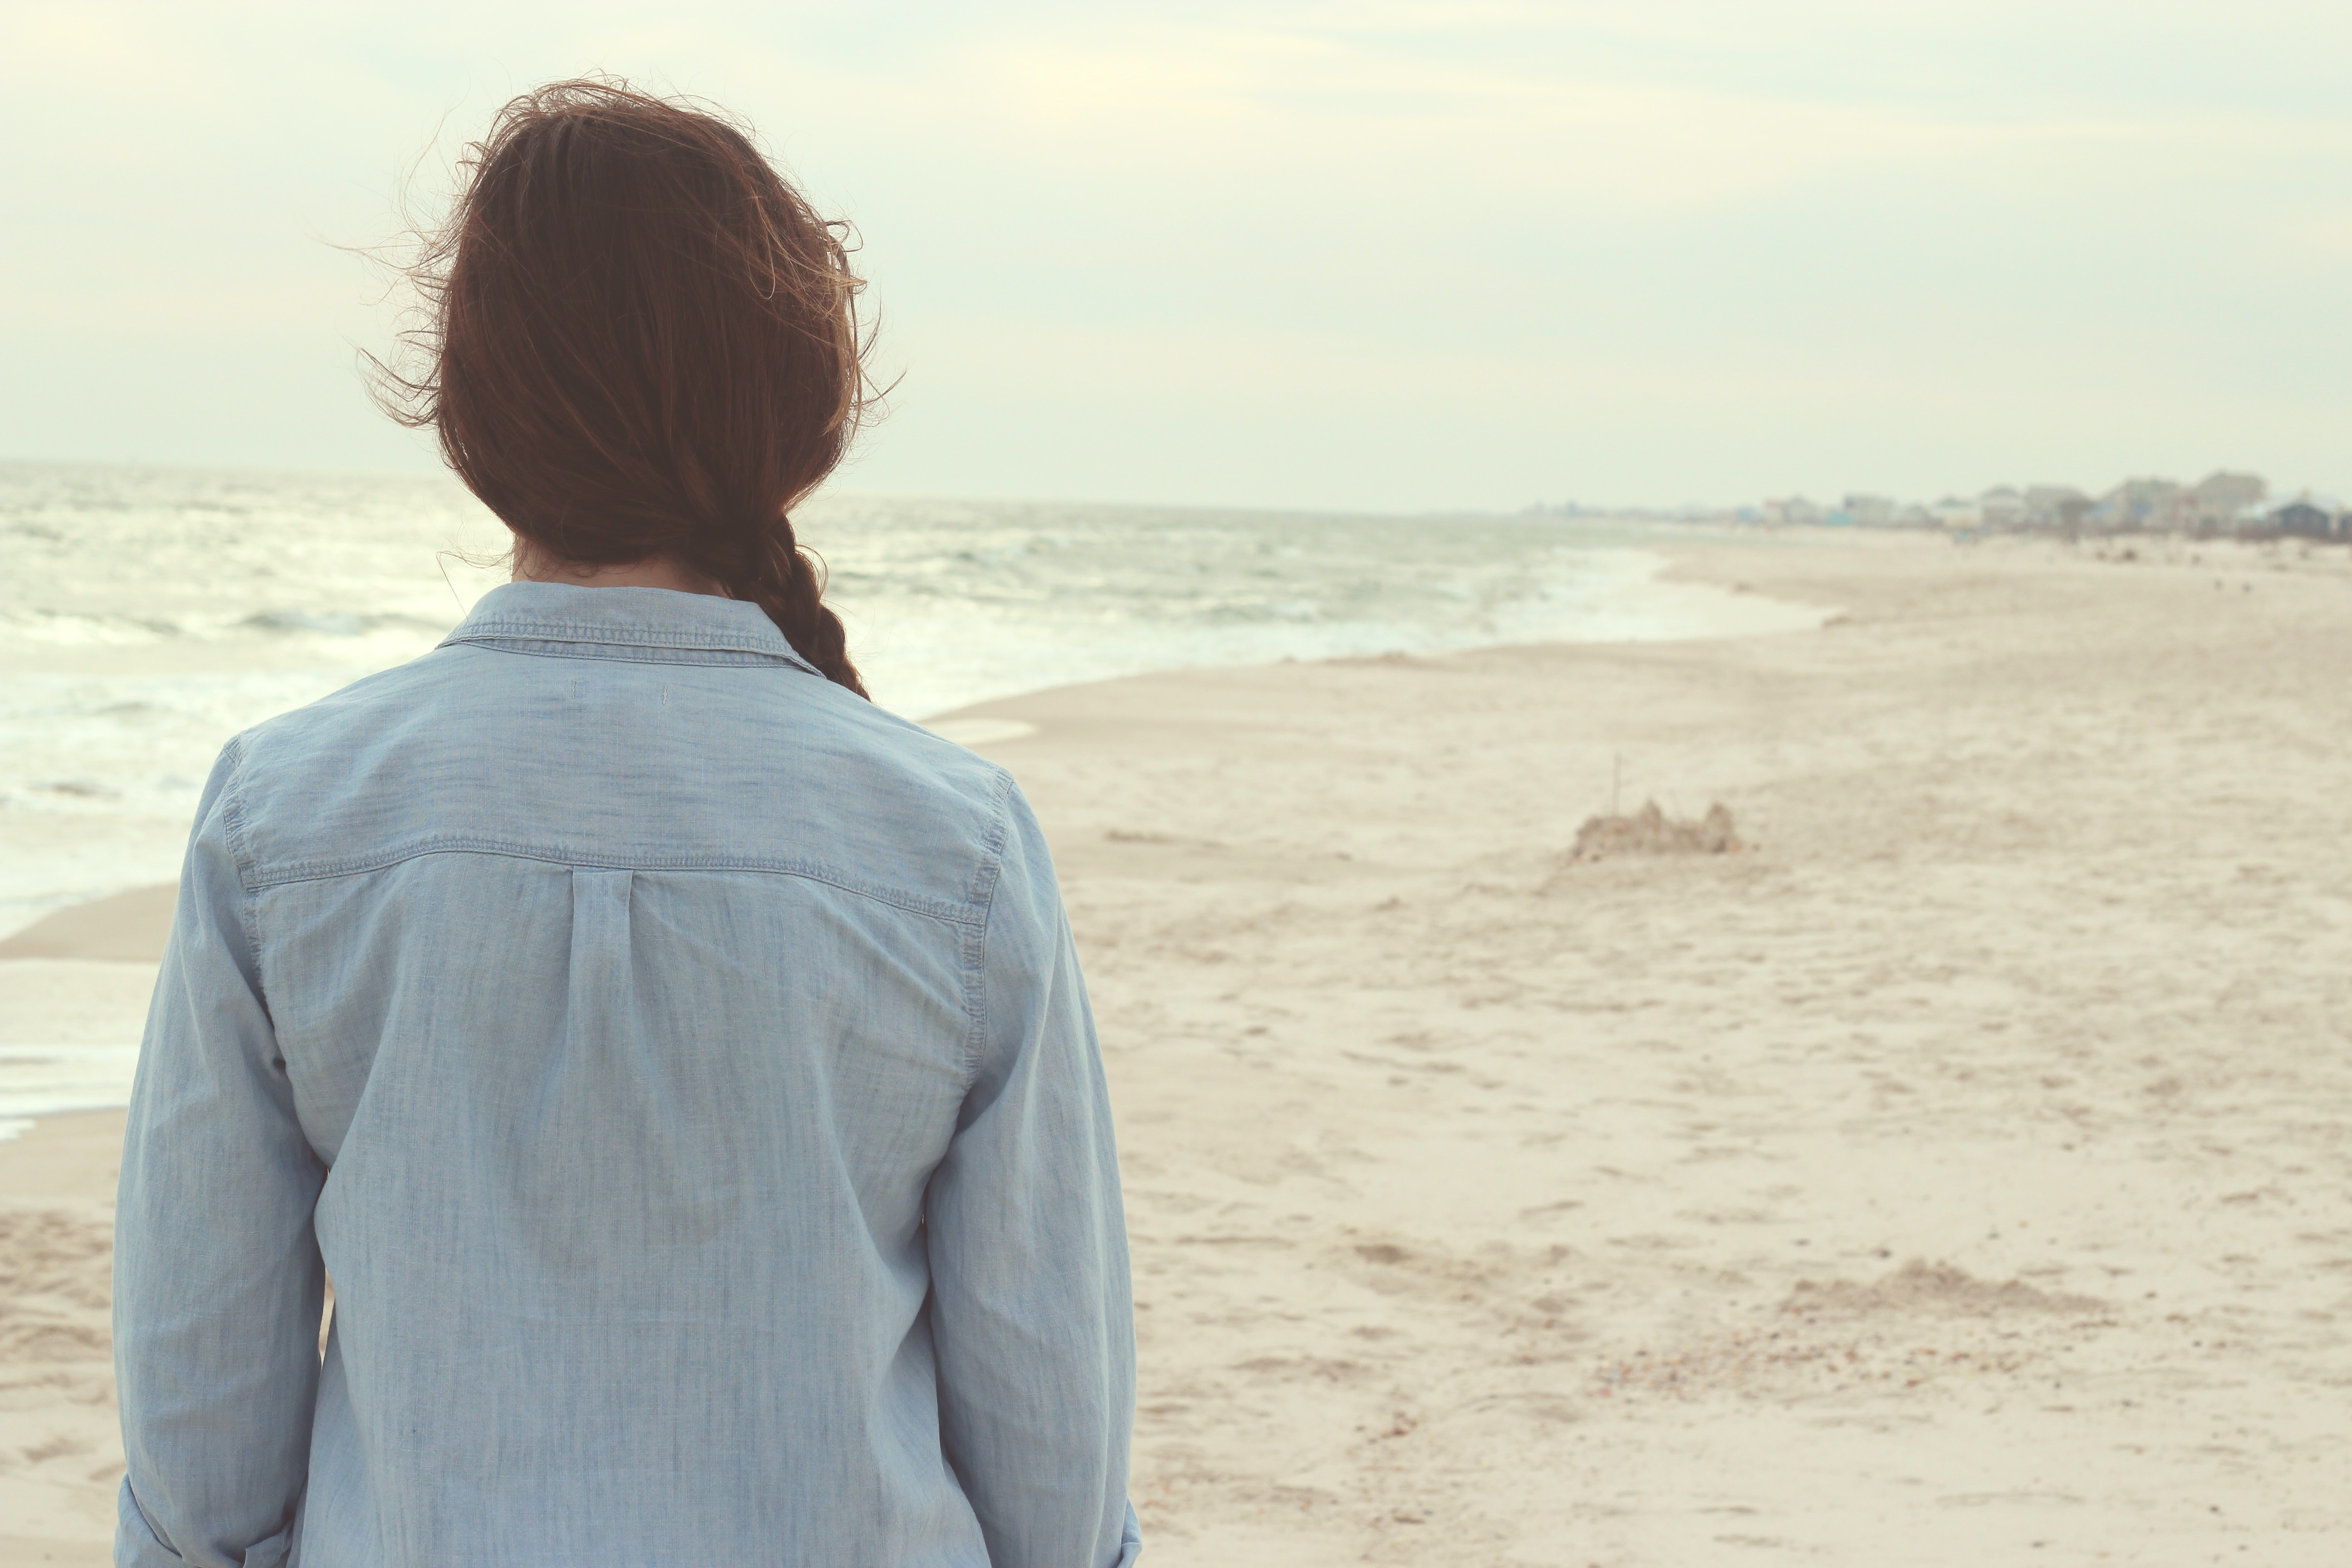 A dark-haired woman looking at a sandy beach